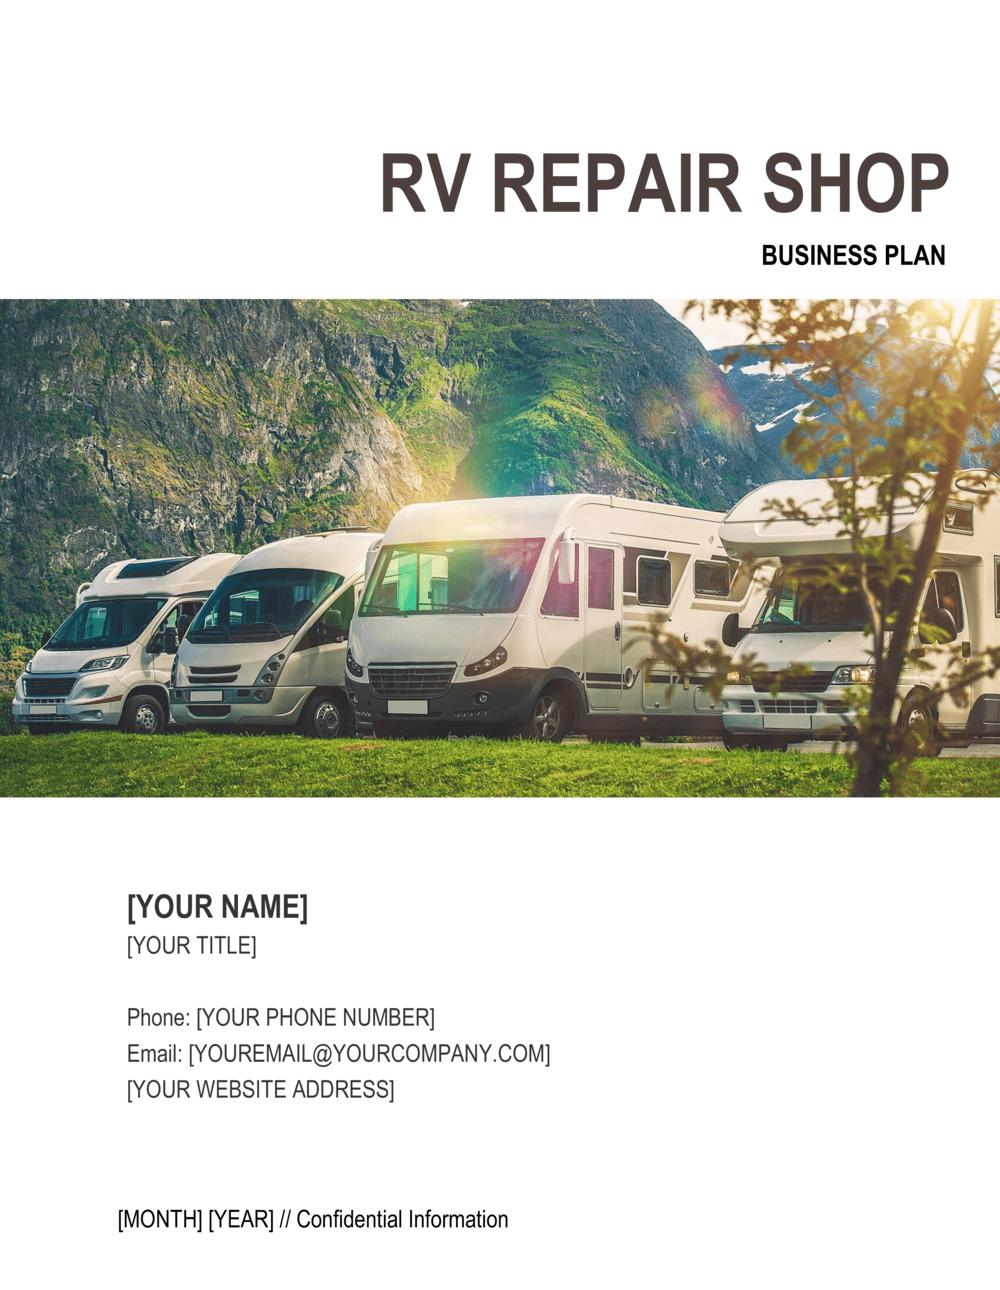 Business-in-a-Box's RV Repair Shop Business Plan Template